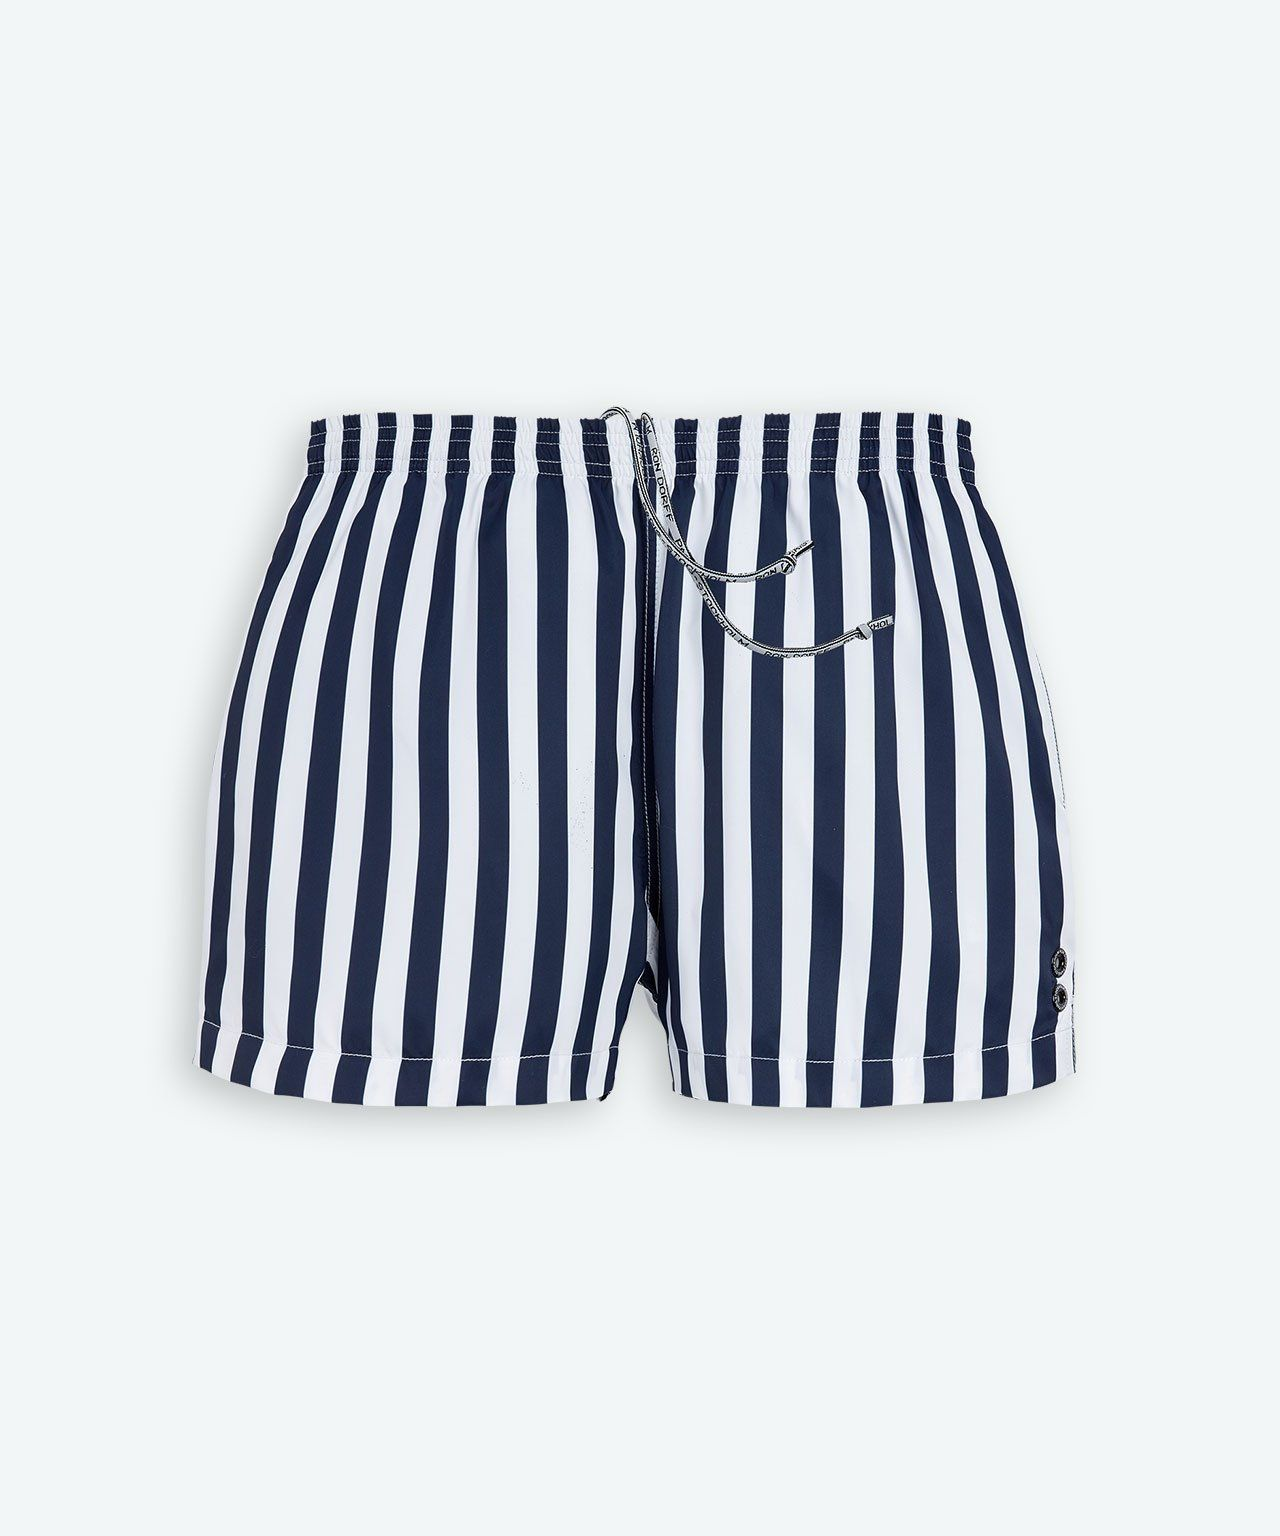 166abd1df3 Swim Shorts Vertical Stripes | My Style | Vertical stripes, Swim ...